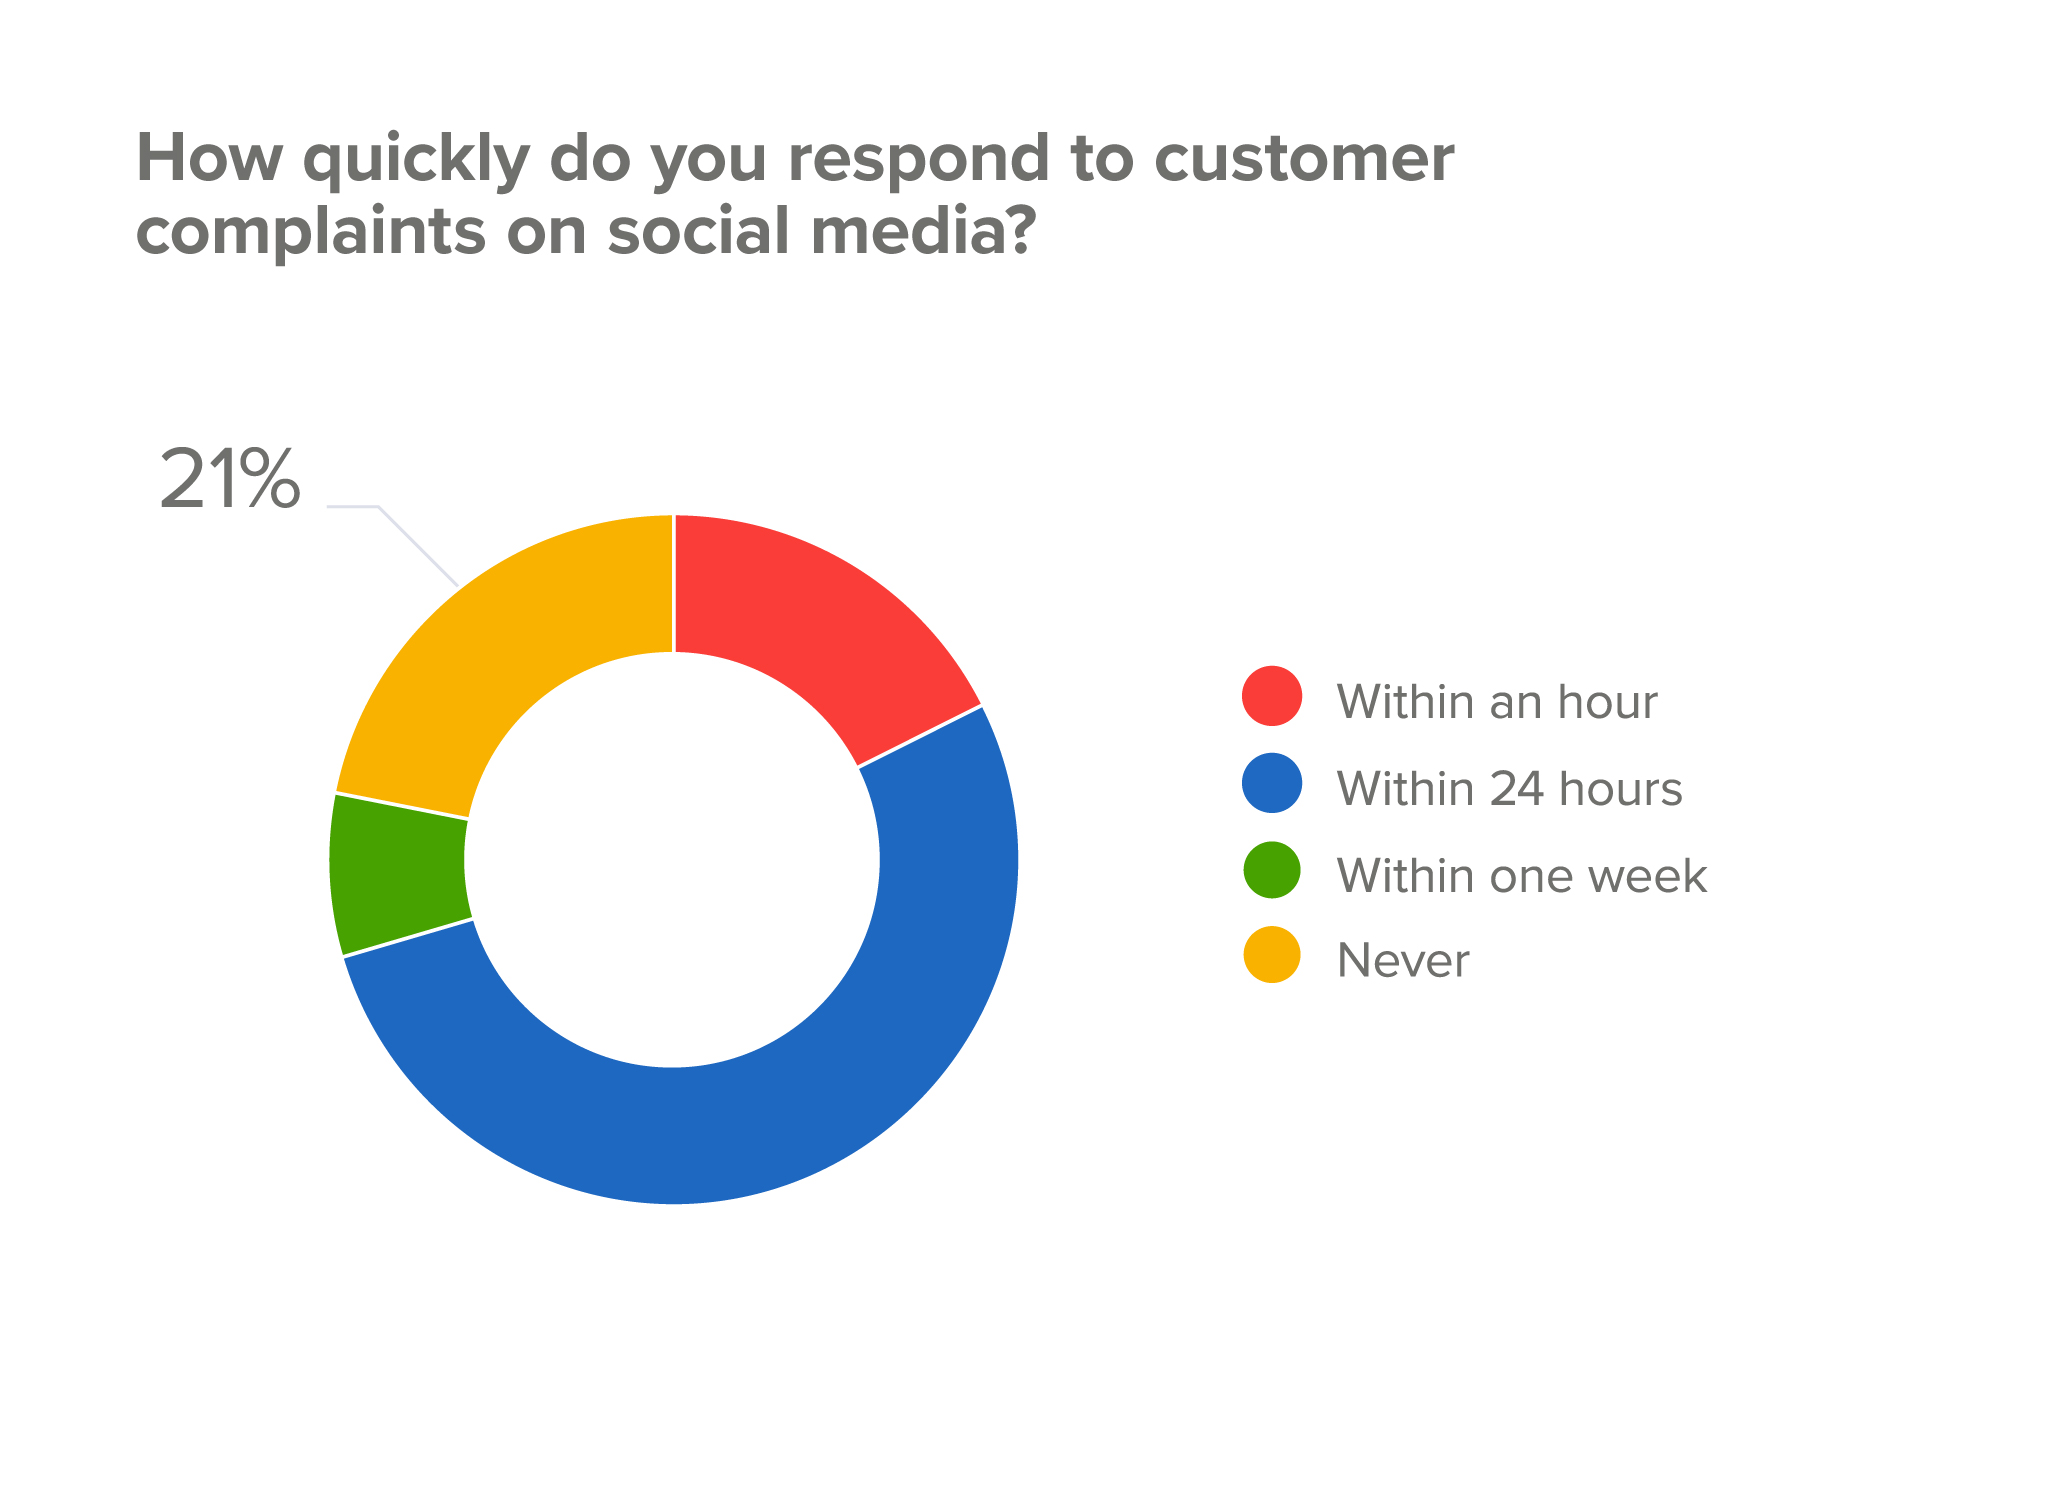 How quickly do you respond to customer complaints on social media?